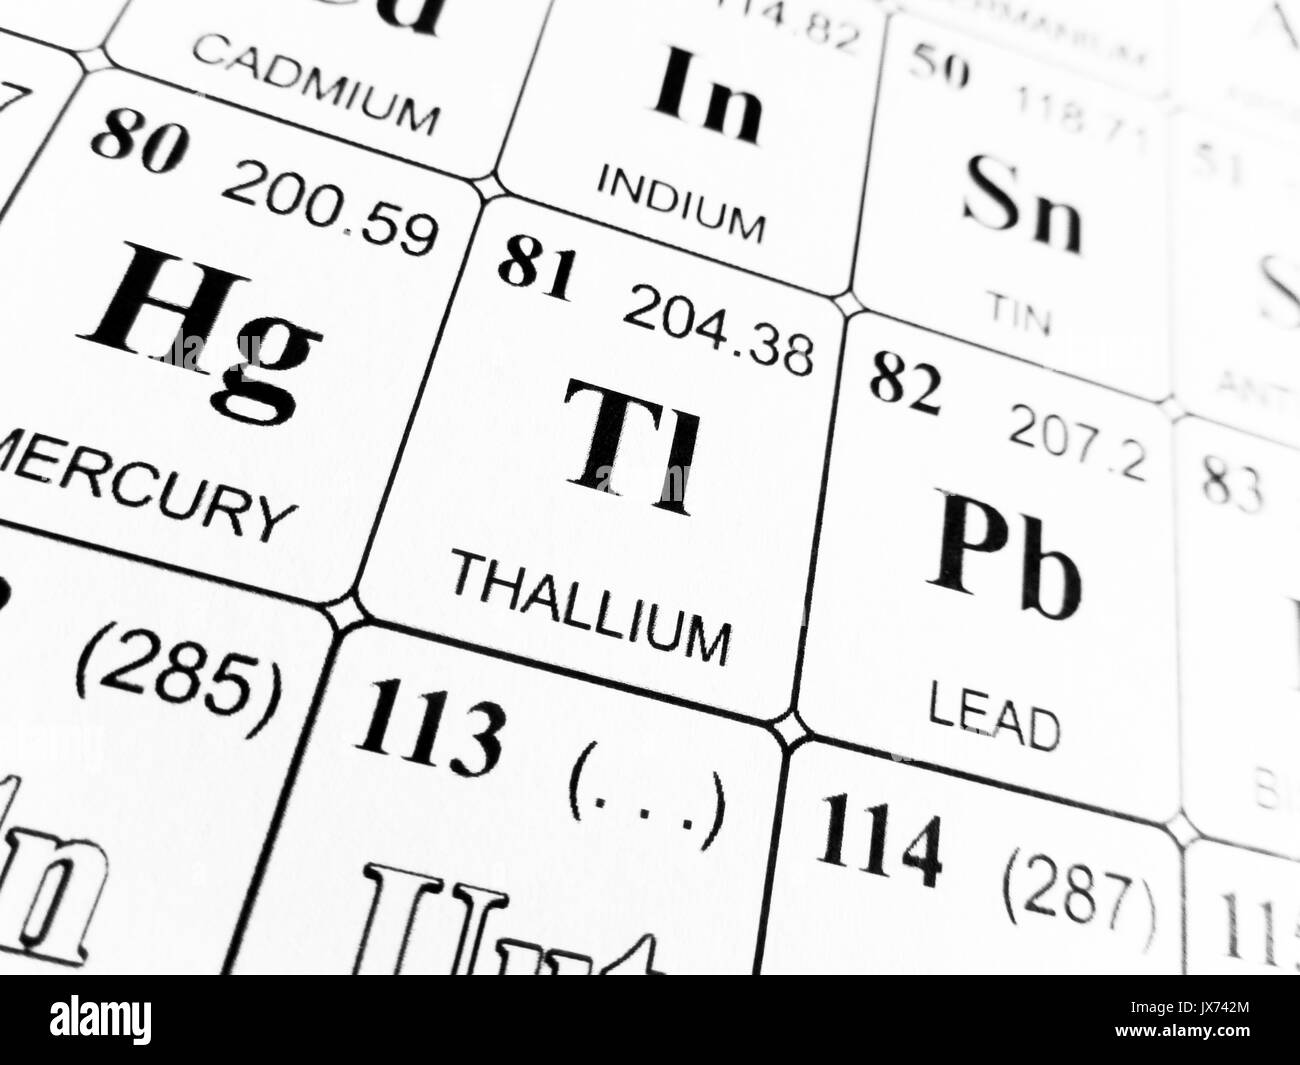 Tl on the periodic table gallery periodic table images element tl periodic table images periodic table images thallium periodic table image collections periodic table images gamestrikefo Images